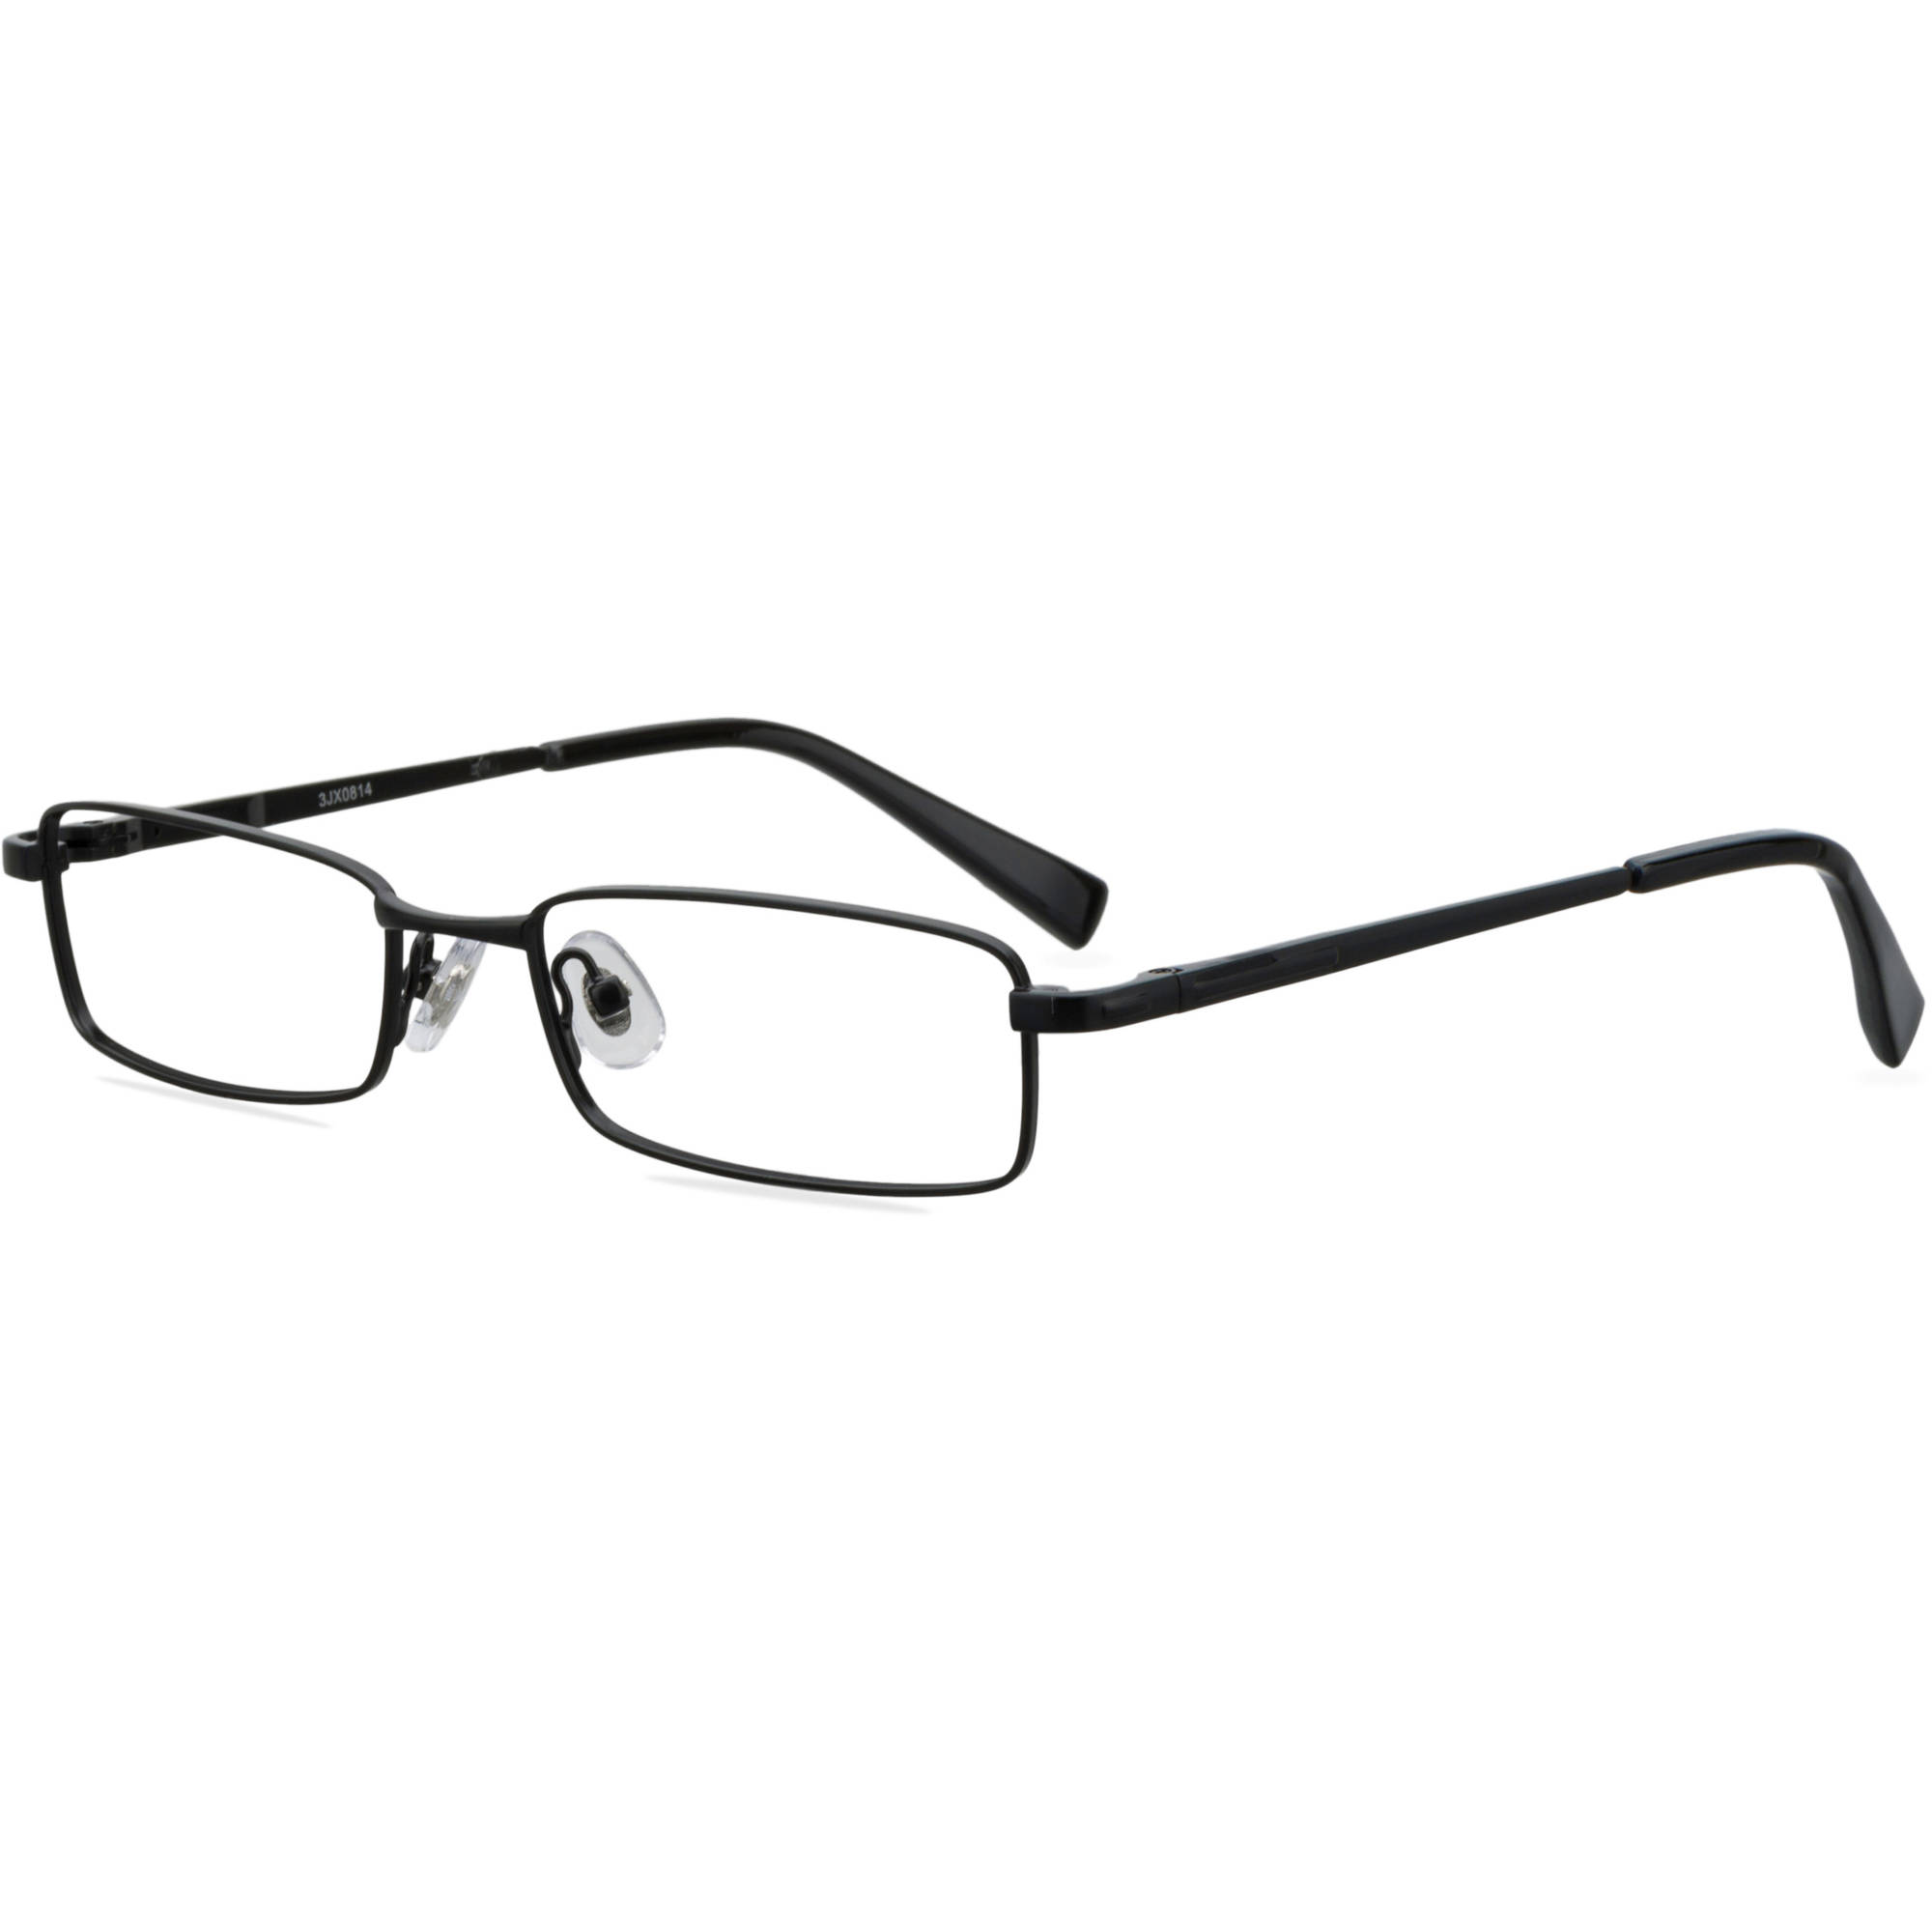 Contour Youths Prescription Glasses, FM12023 Matt Black - Walmart.com | Tuggl